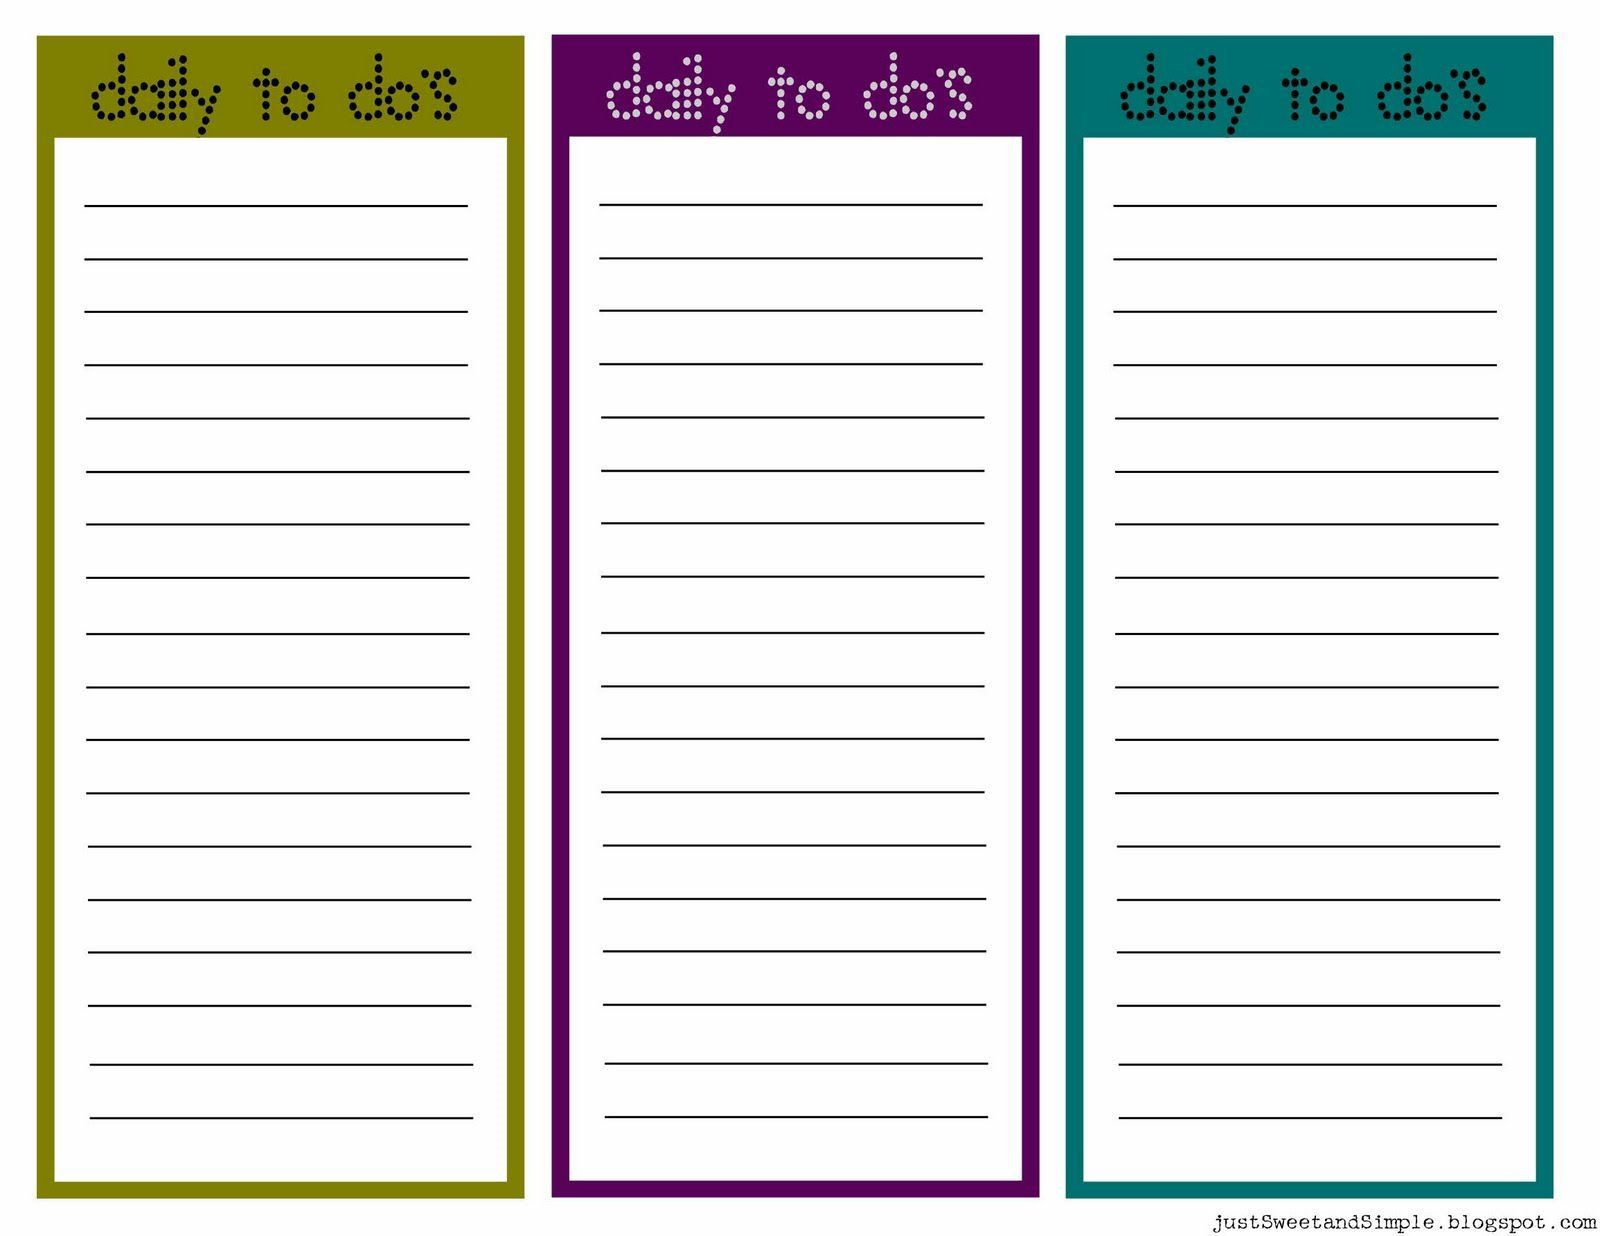 002 Breathtaking Daily To Do List Template High Resolution  Templates FreeFull